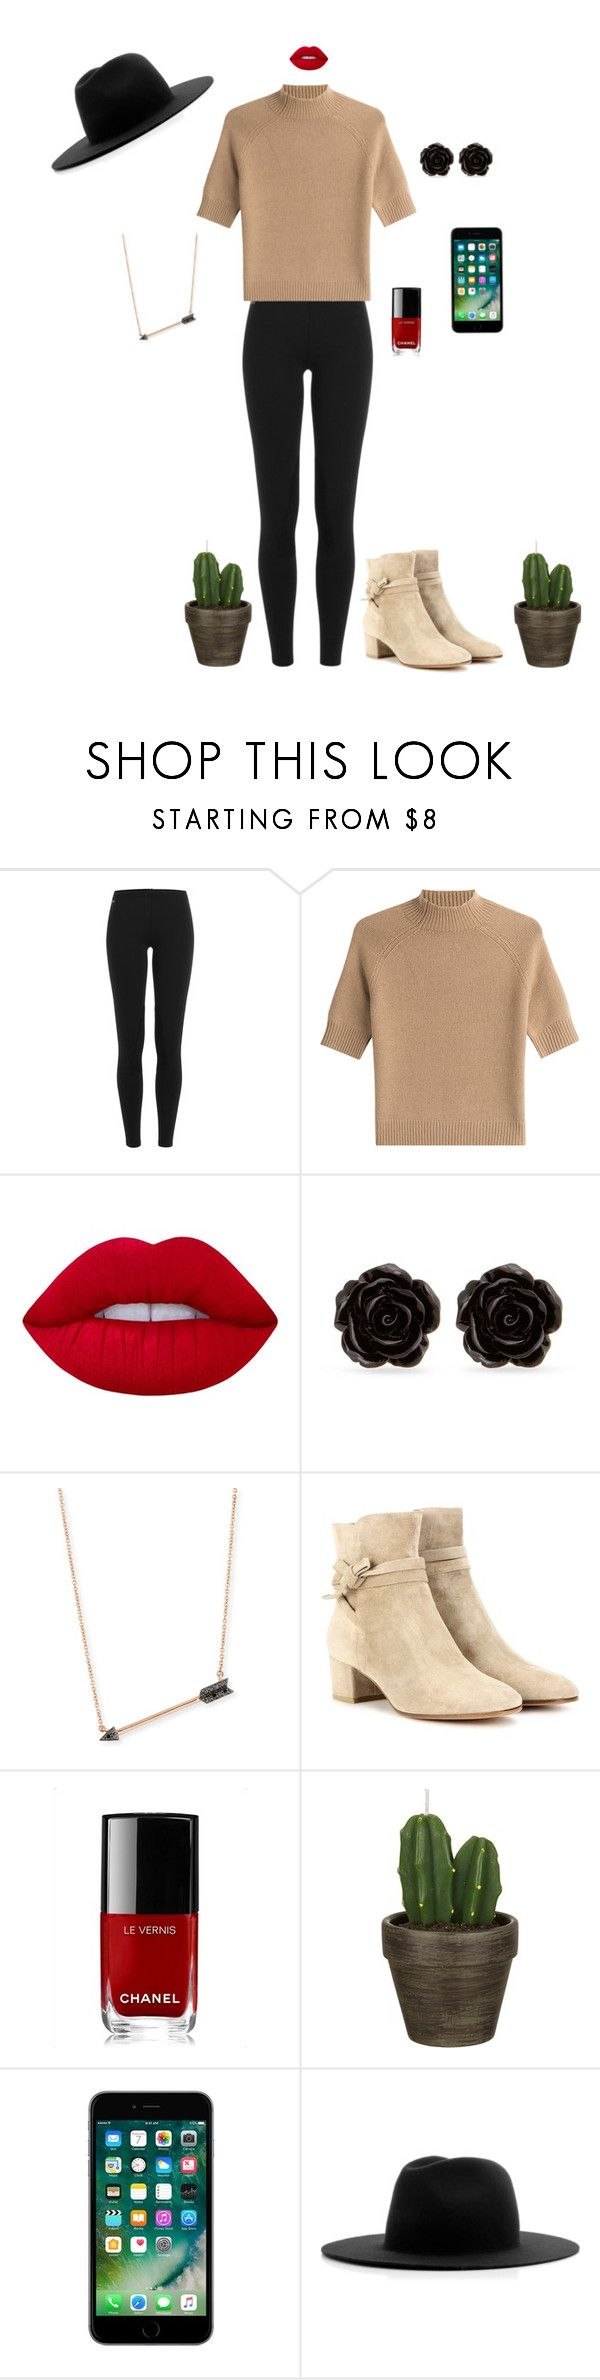 """see me in light"" by mihan22 on Polyvore featuring Ralph Lauren Blue Label, Theory, Lime Crime, Erica Lyons, Sydney Evan, Gianvito Rossi, Chanel, John Lewis and Études"